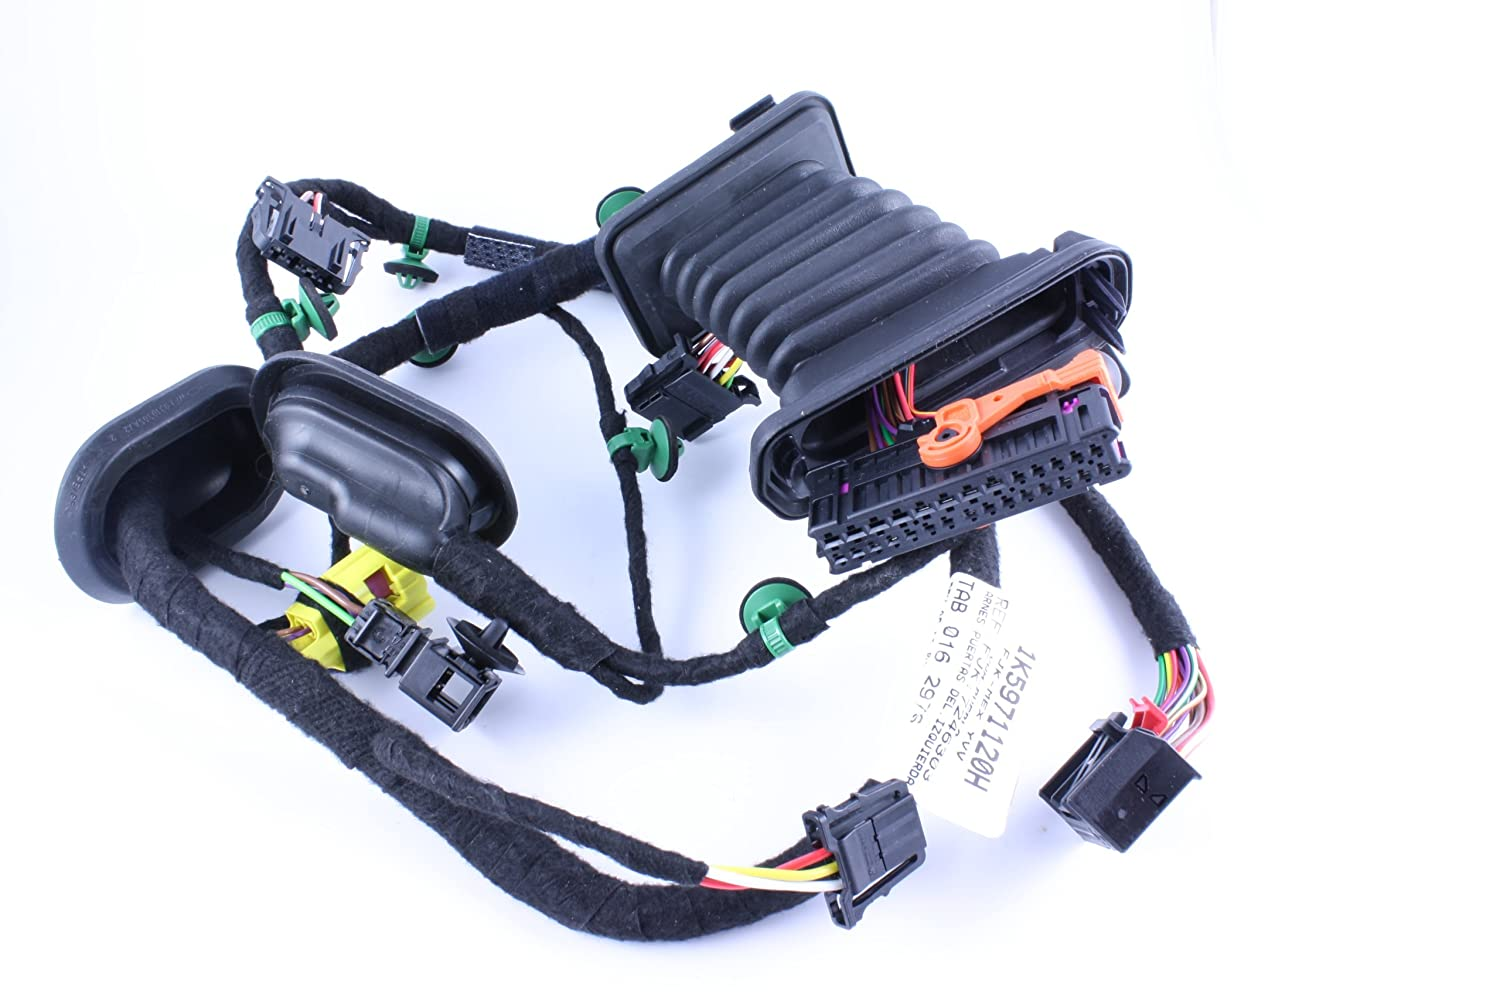 81nbhs5WbzL._SL1500_ amazon com genuine volkswagen drivers side door harness 1k5 971 mk5 jetta door wiring harness at suagrazia.org